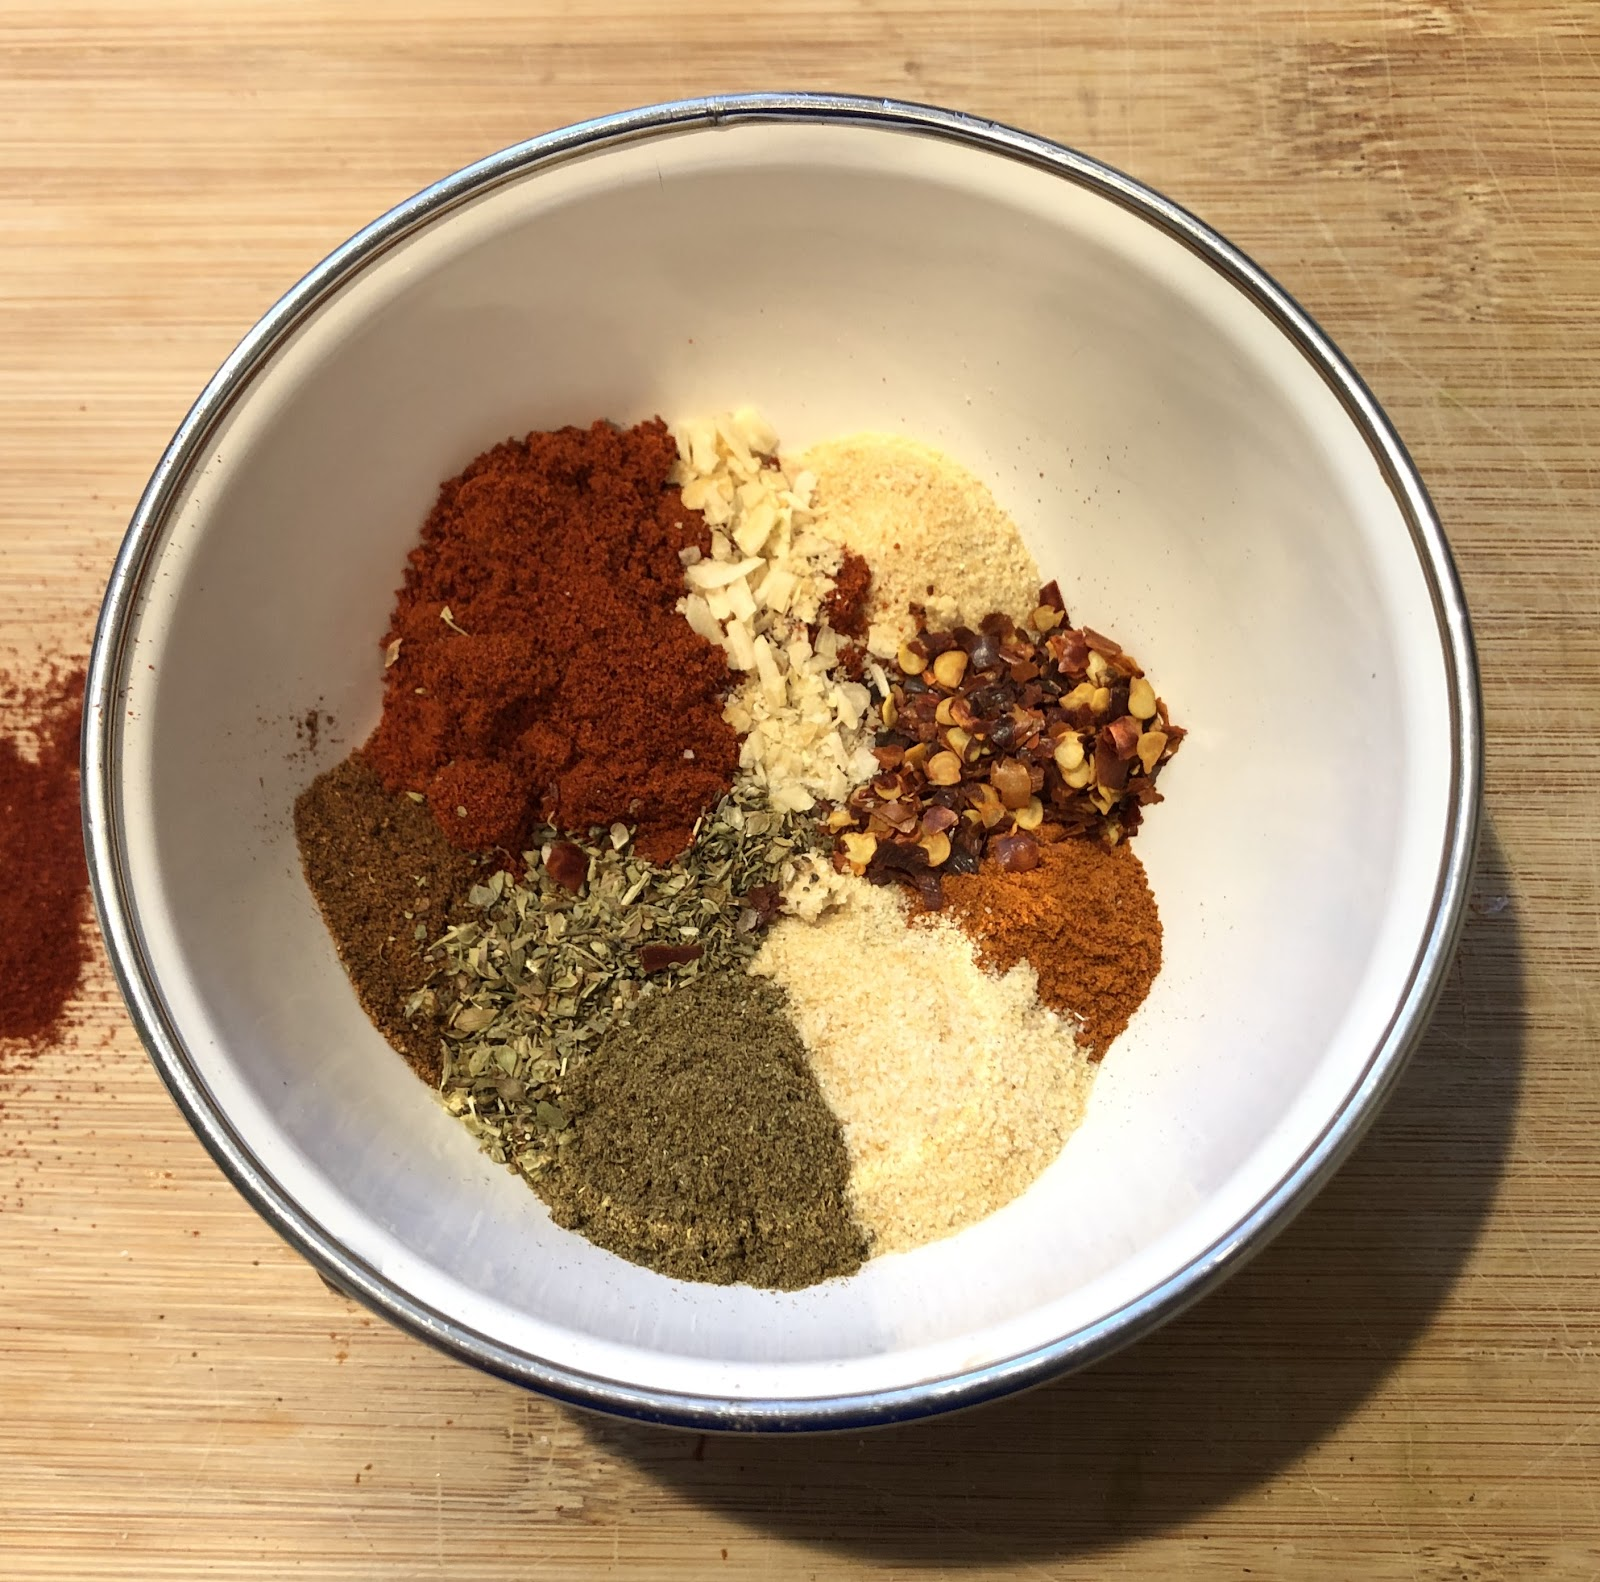 dried herbs and spices for chili seasoning in a bowl